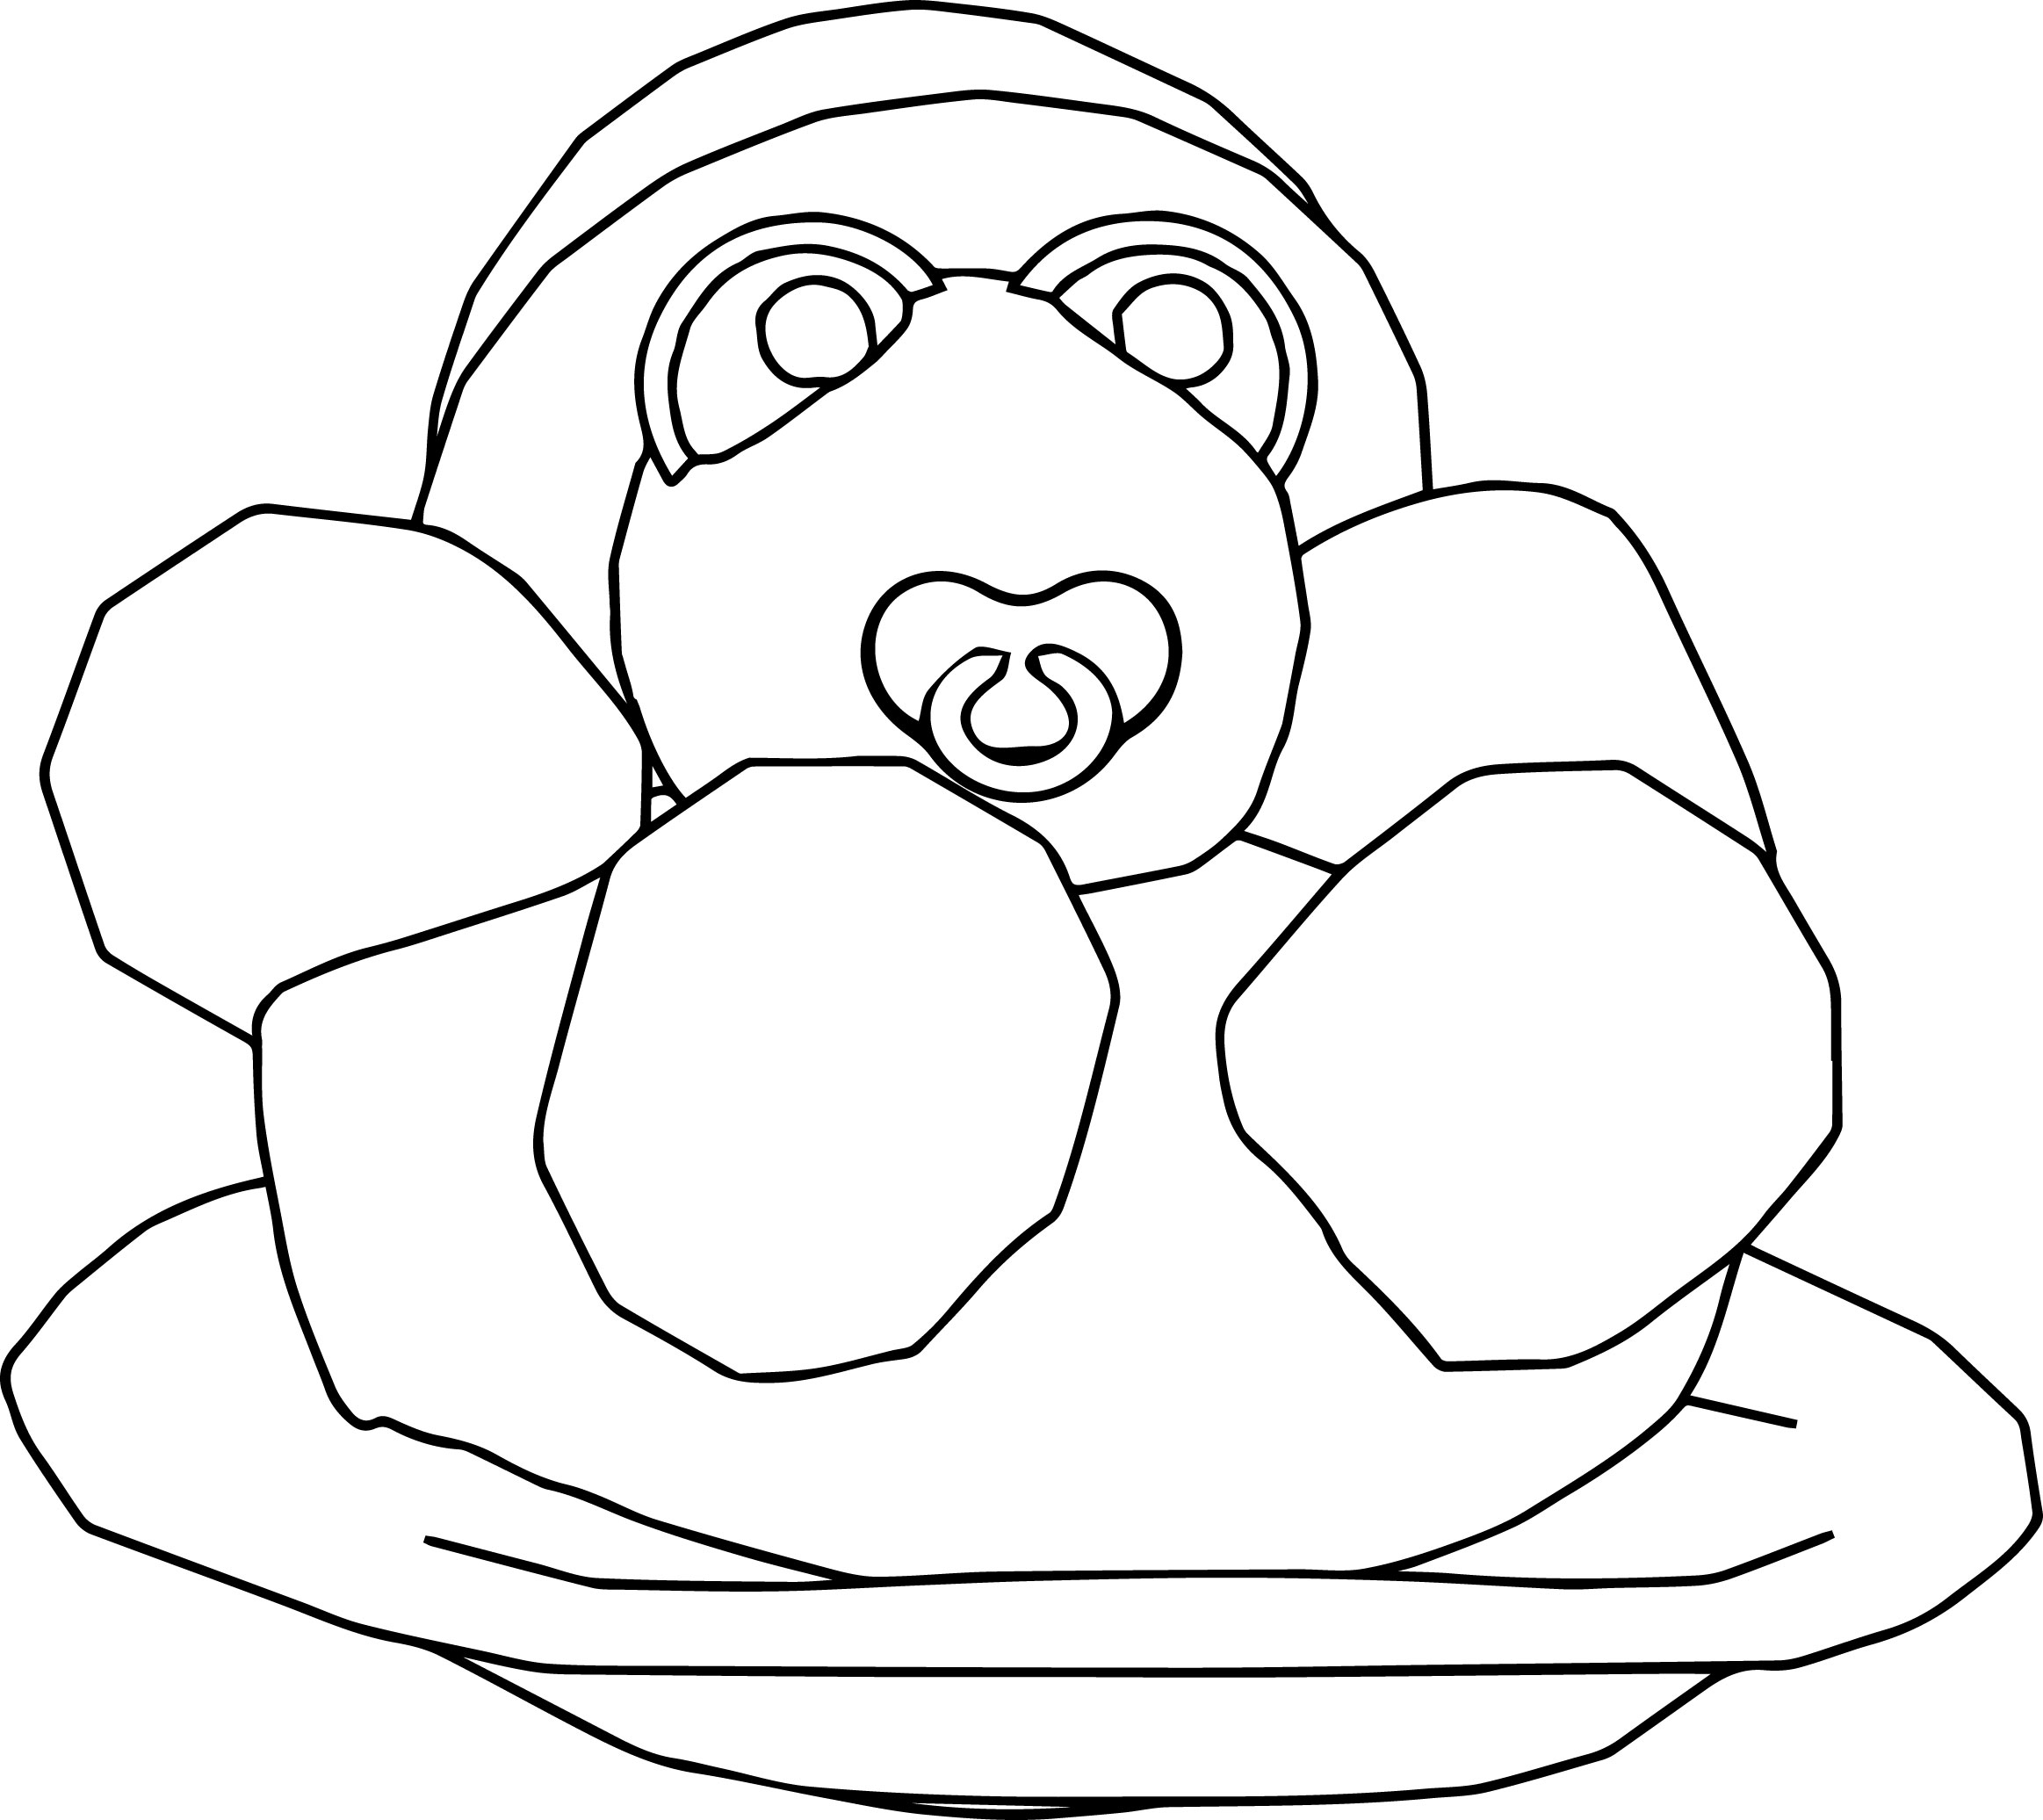 baby turtle cartoon coloring page wecoloringpagecom